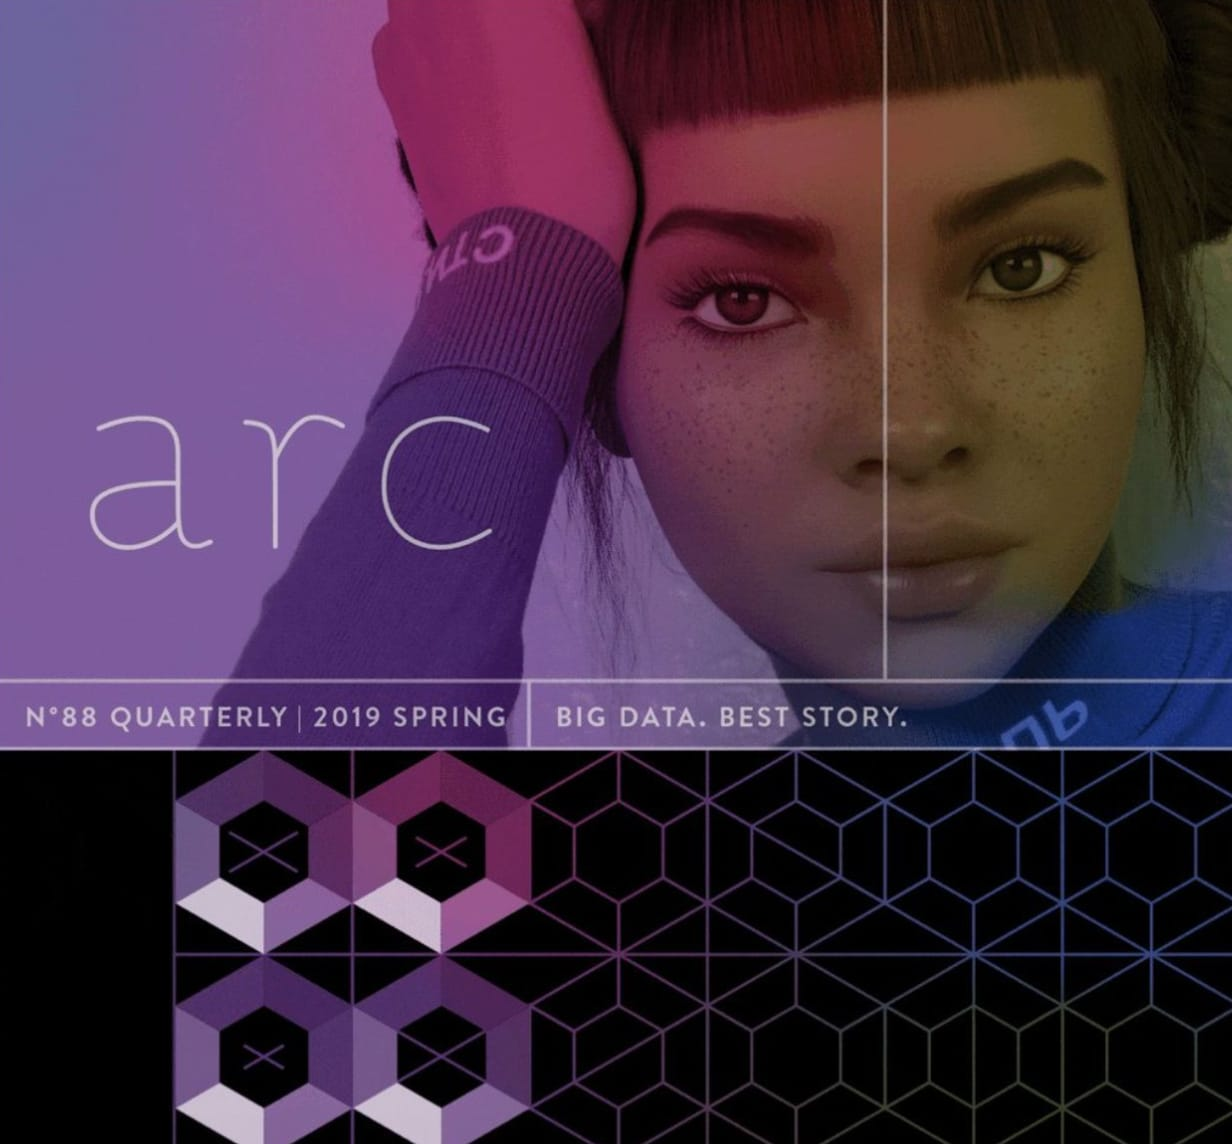 N°88 Quarterly: ARC